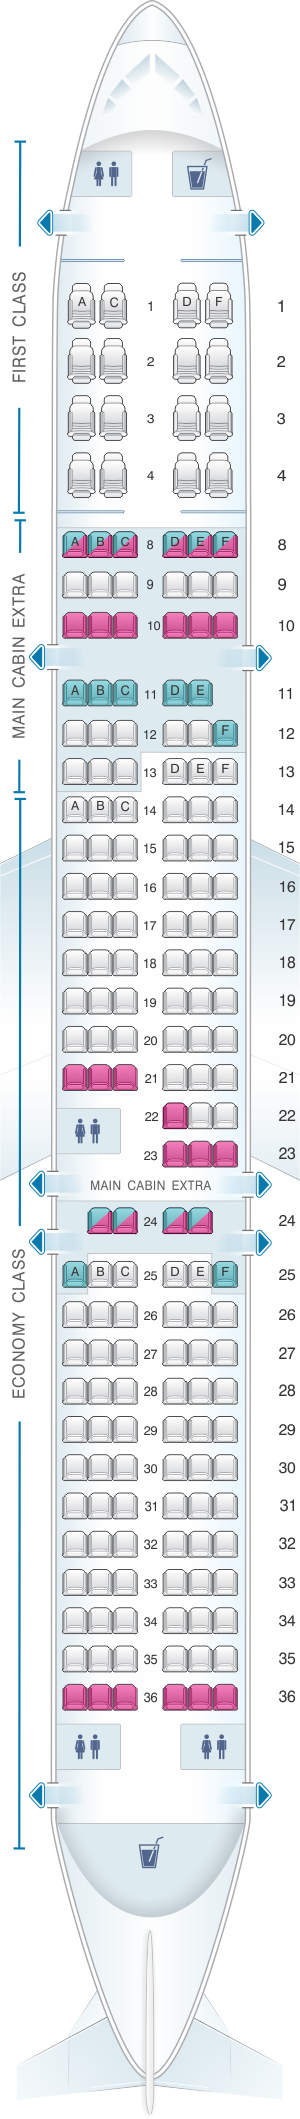 Seat Map American Airlines Airbus A321 181pax Vietnam